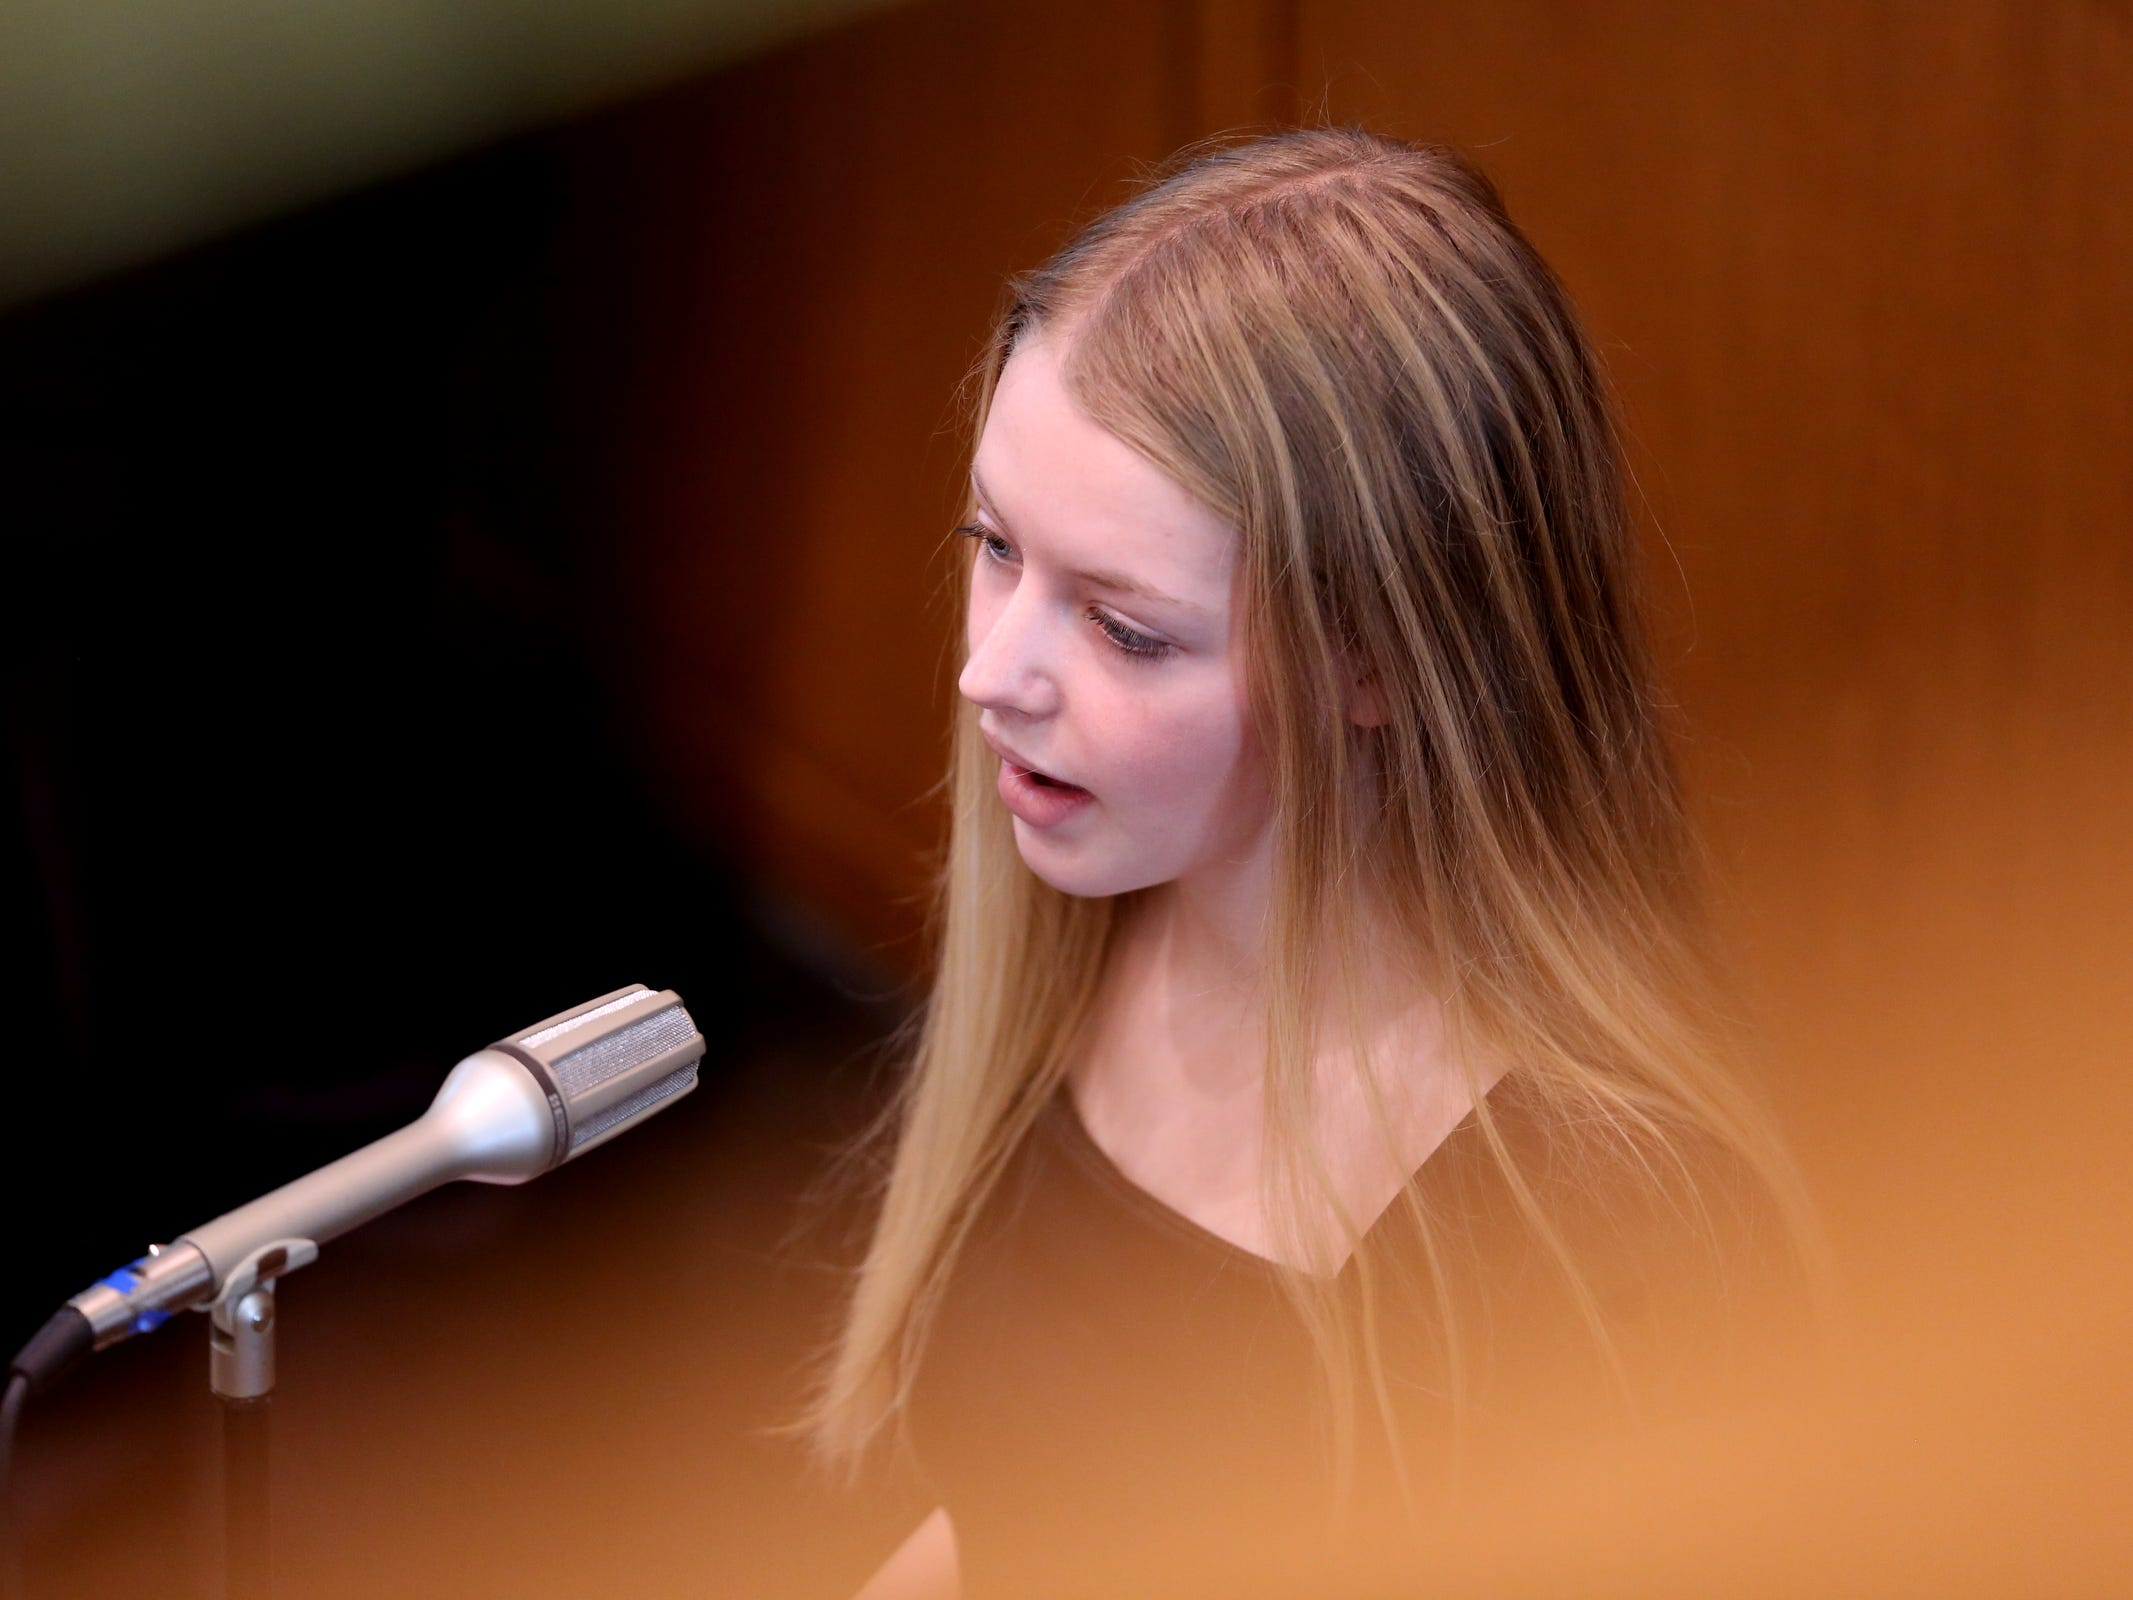 Asia Whoolery, sings during the state funeral for her grandfather, Secretary of State Dennis Richardson, at the Oregon State Capitol in Salem on Wednesday, March 6, 2019.